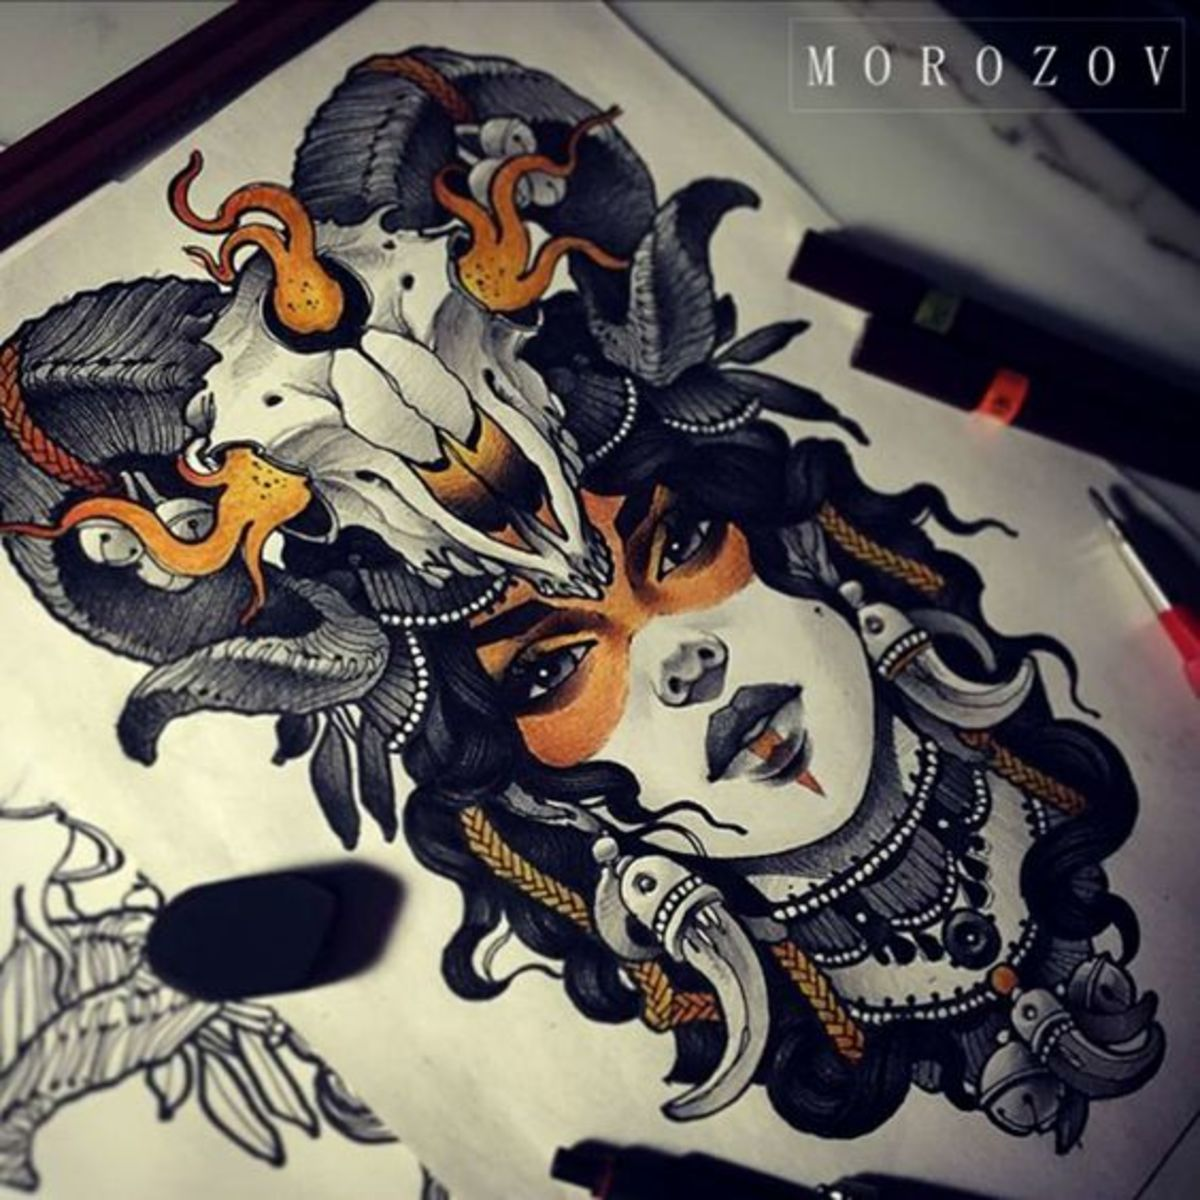 Aries tattoo for woman by Vitaly Morozov